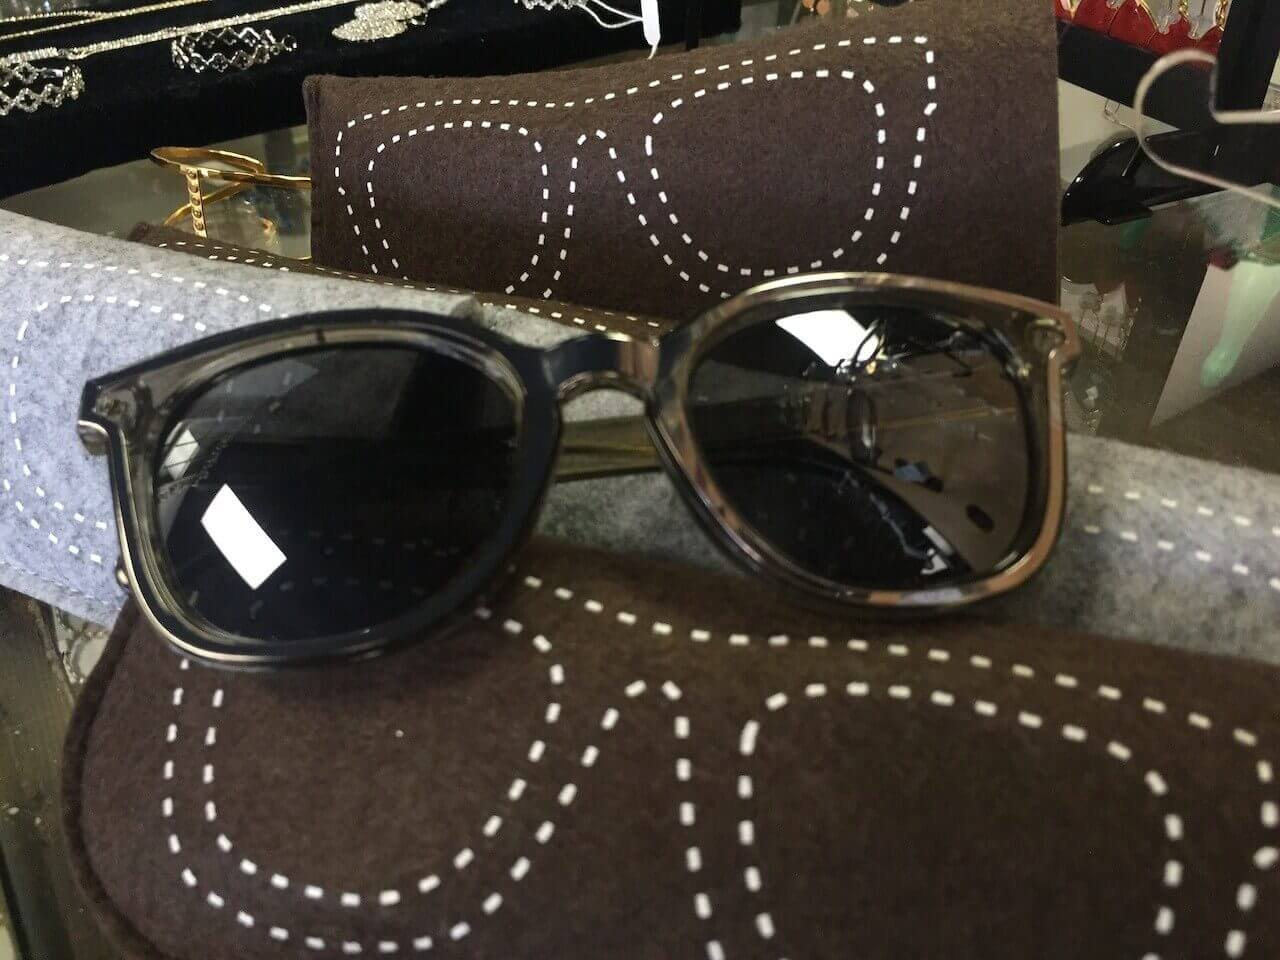 Mirrored sunglasses and flannel case, $22 at Pickering Boxwood